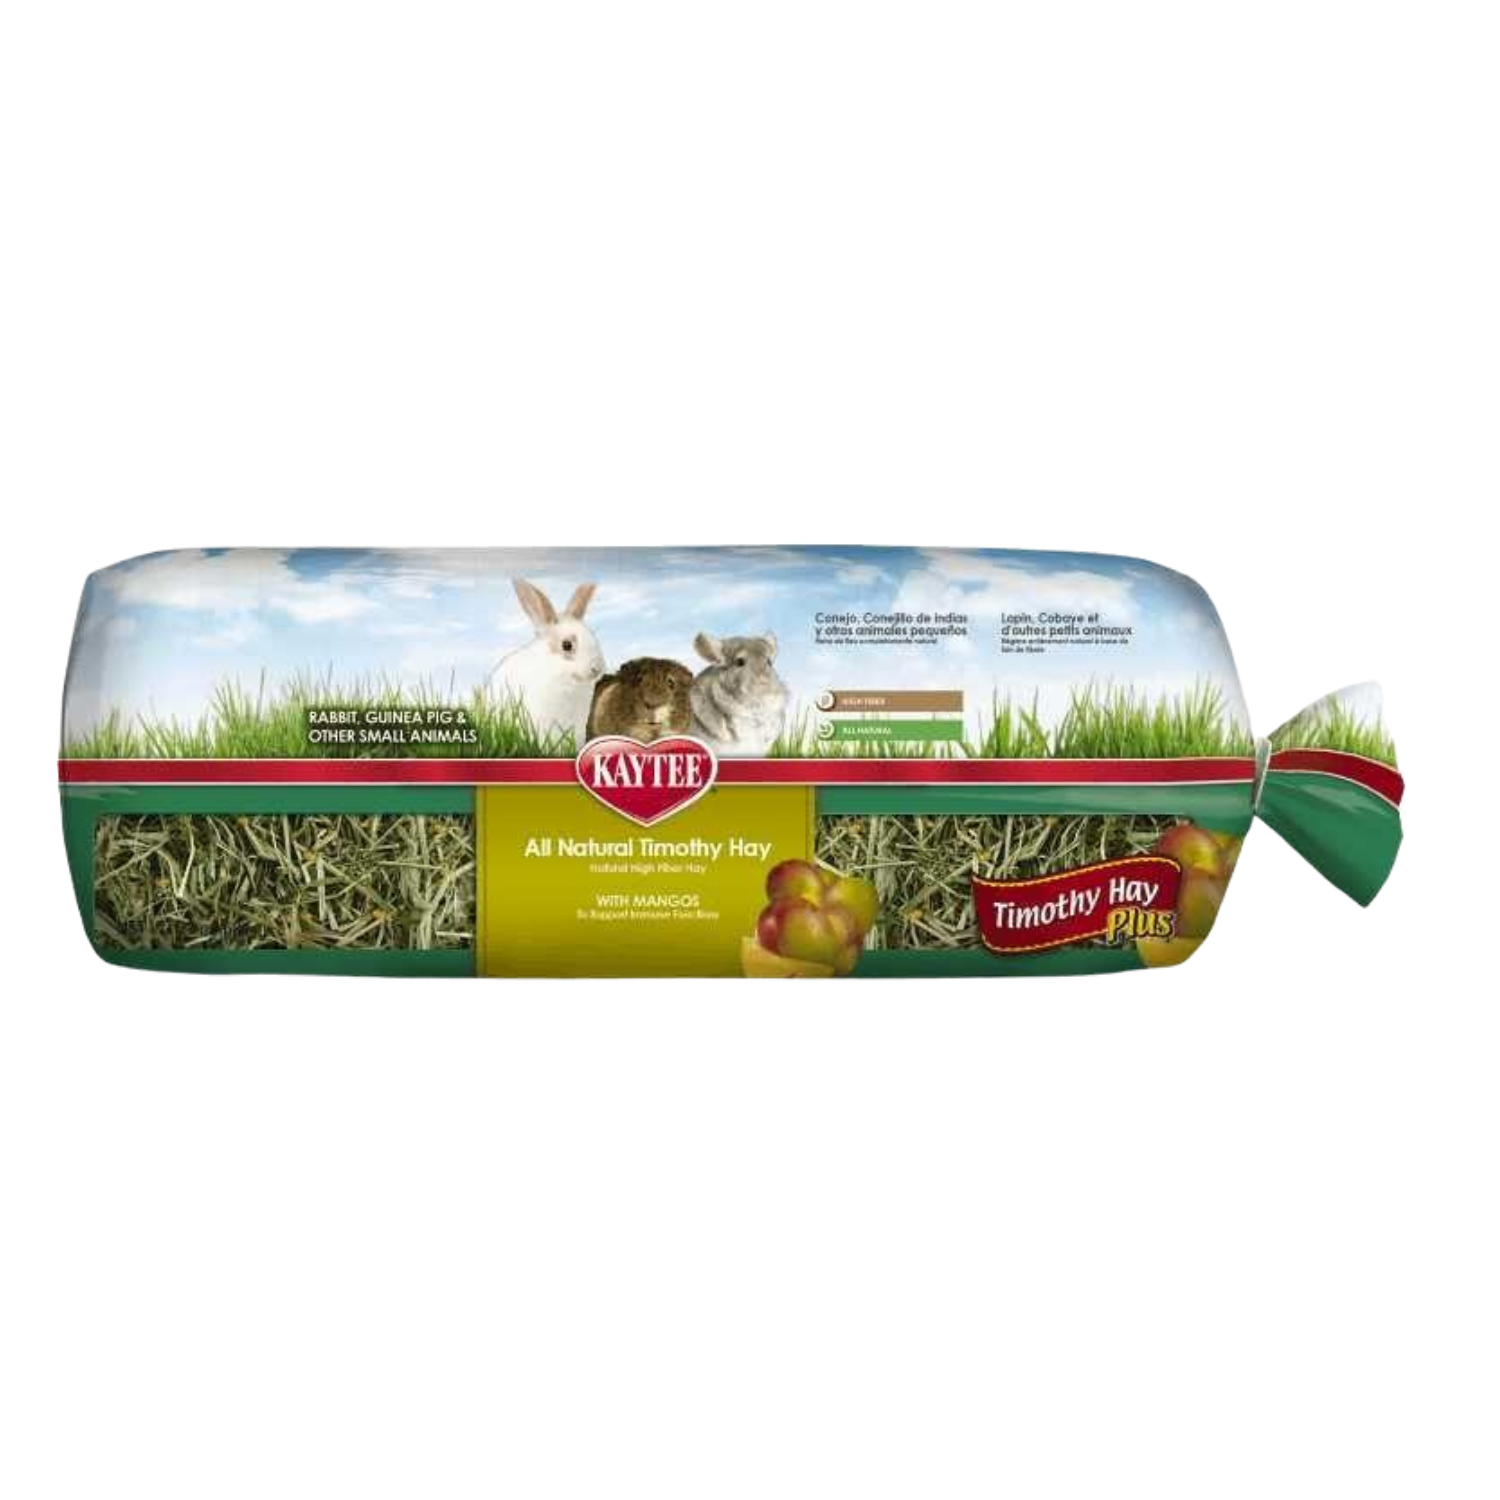 Kaytee Timothy Hay Plus (Mango) Mini Bale - 680g